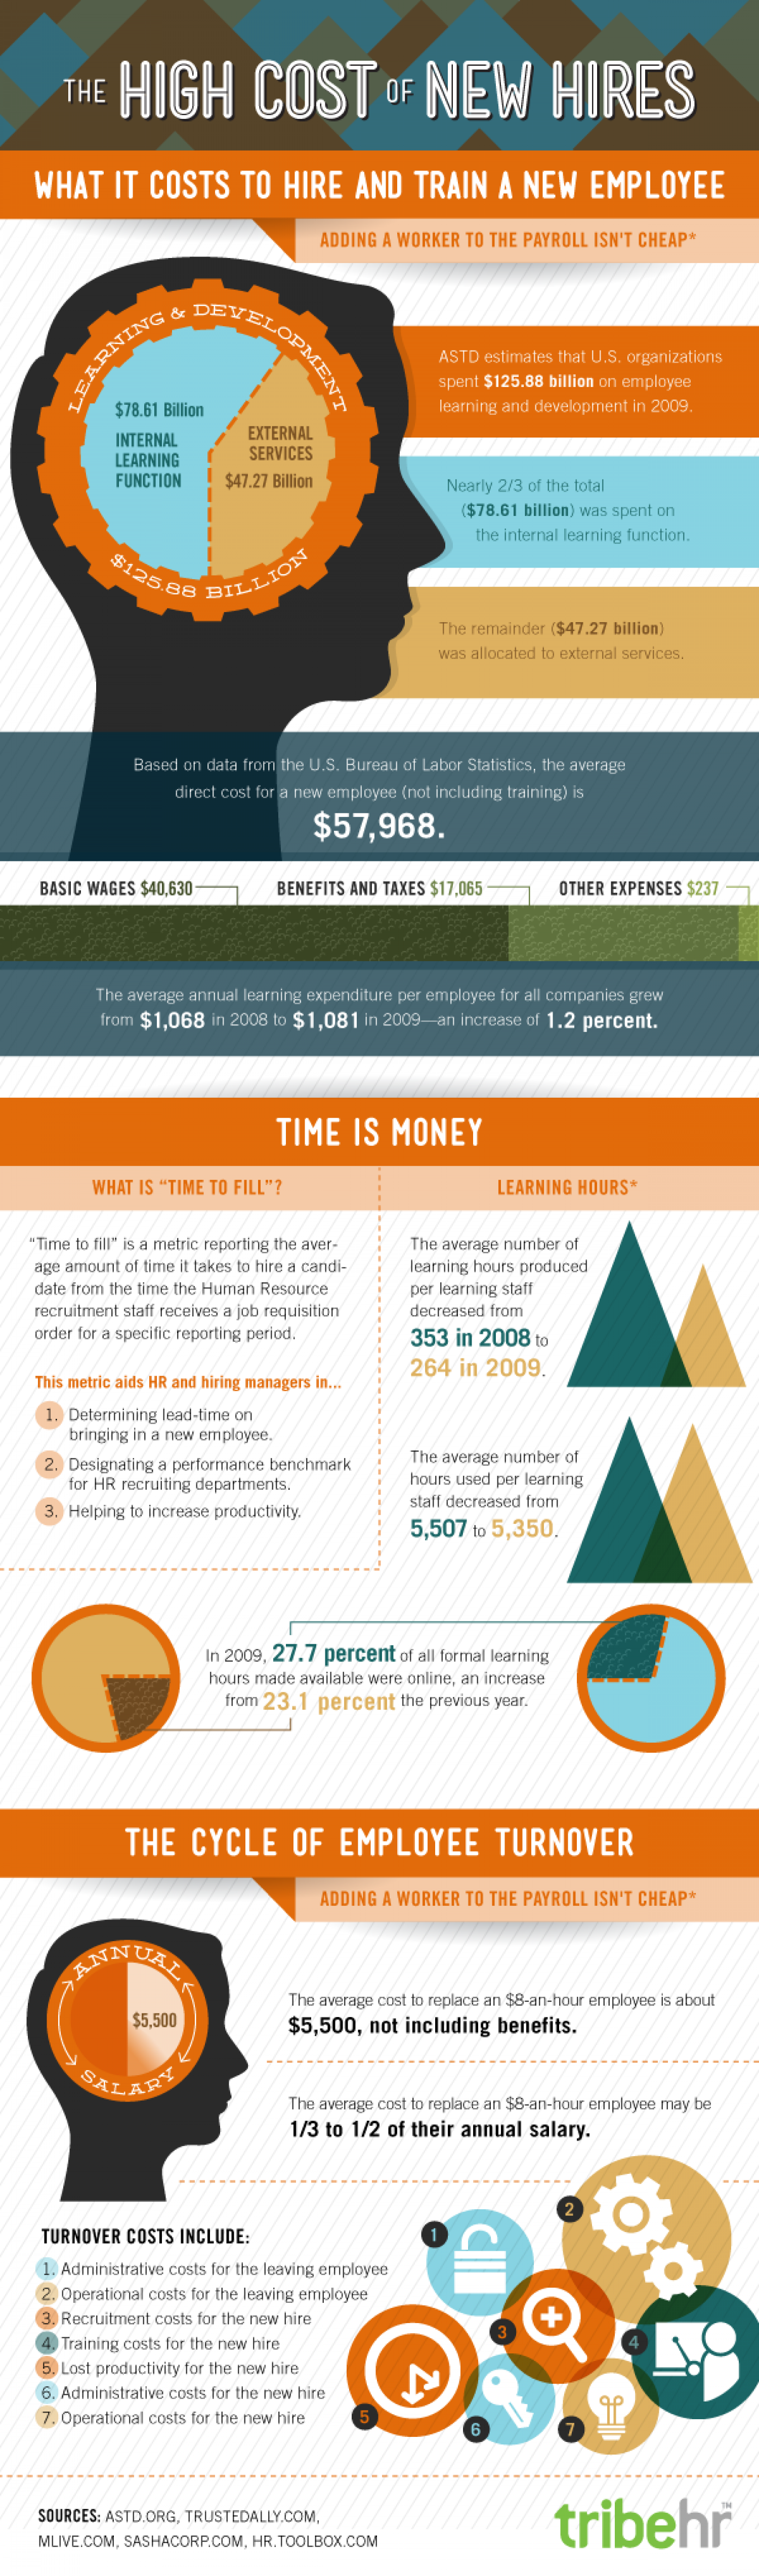 The High Cost Of New Hires Infographic